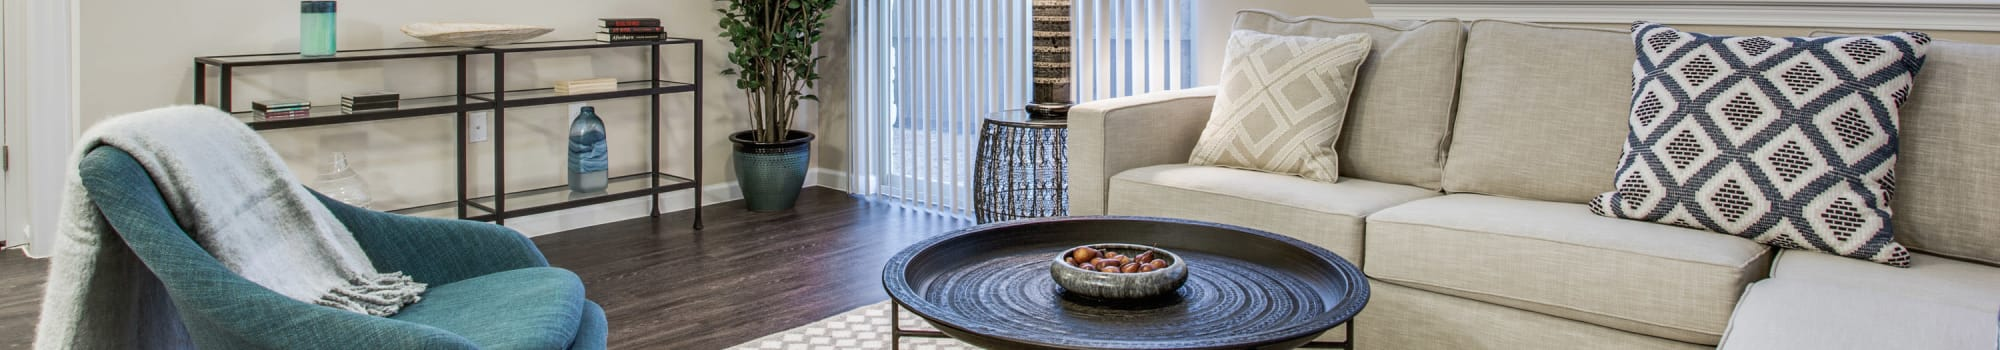 Schedule a tour at Avilla Northside in McKinney, Texas